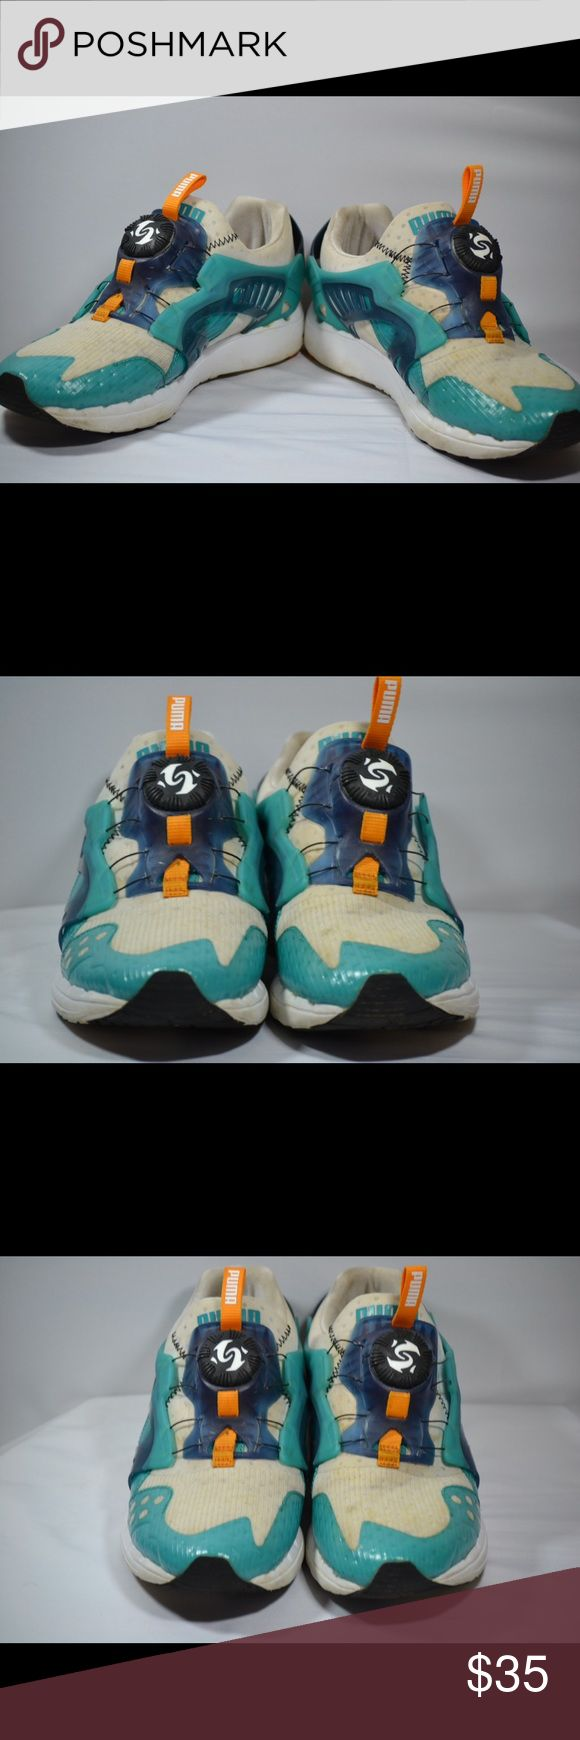 Puma Disc System Sneakers Puma Disc System Sneakers. Some discoloration but good condition shoes. Please view photos for better details. Puma Shoes Athletic Shoes